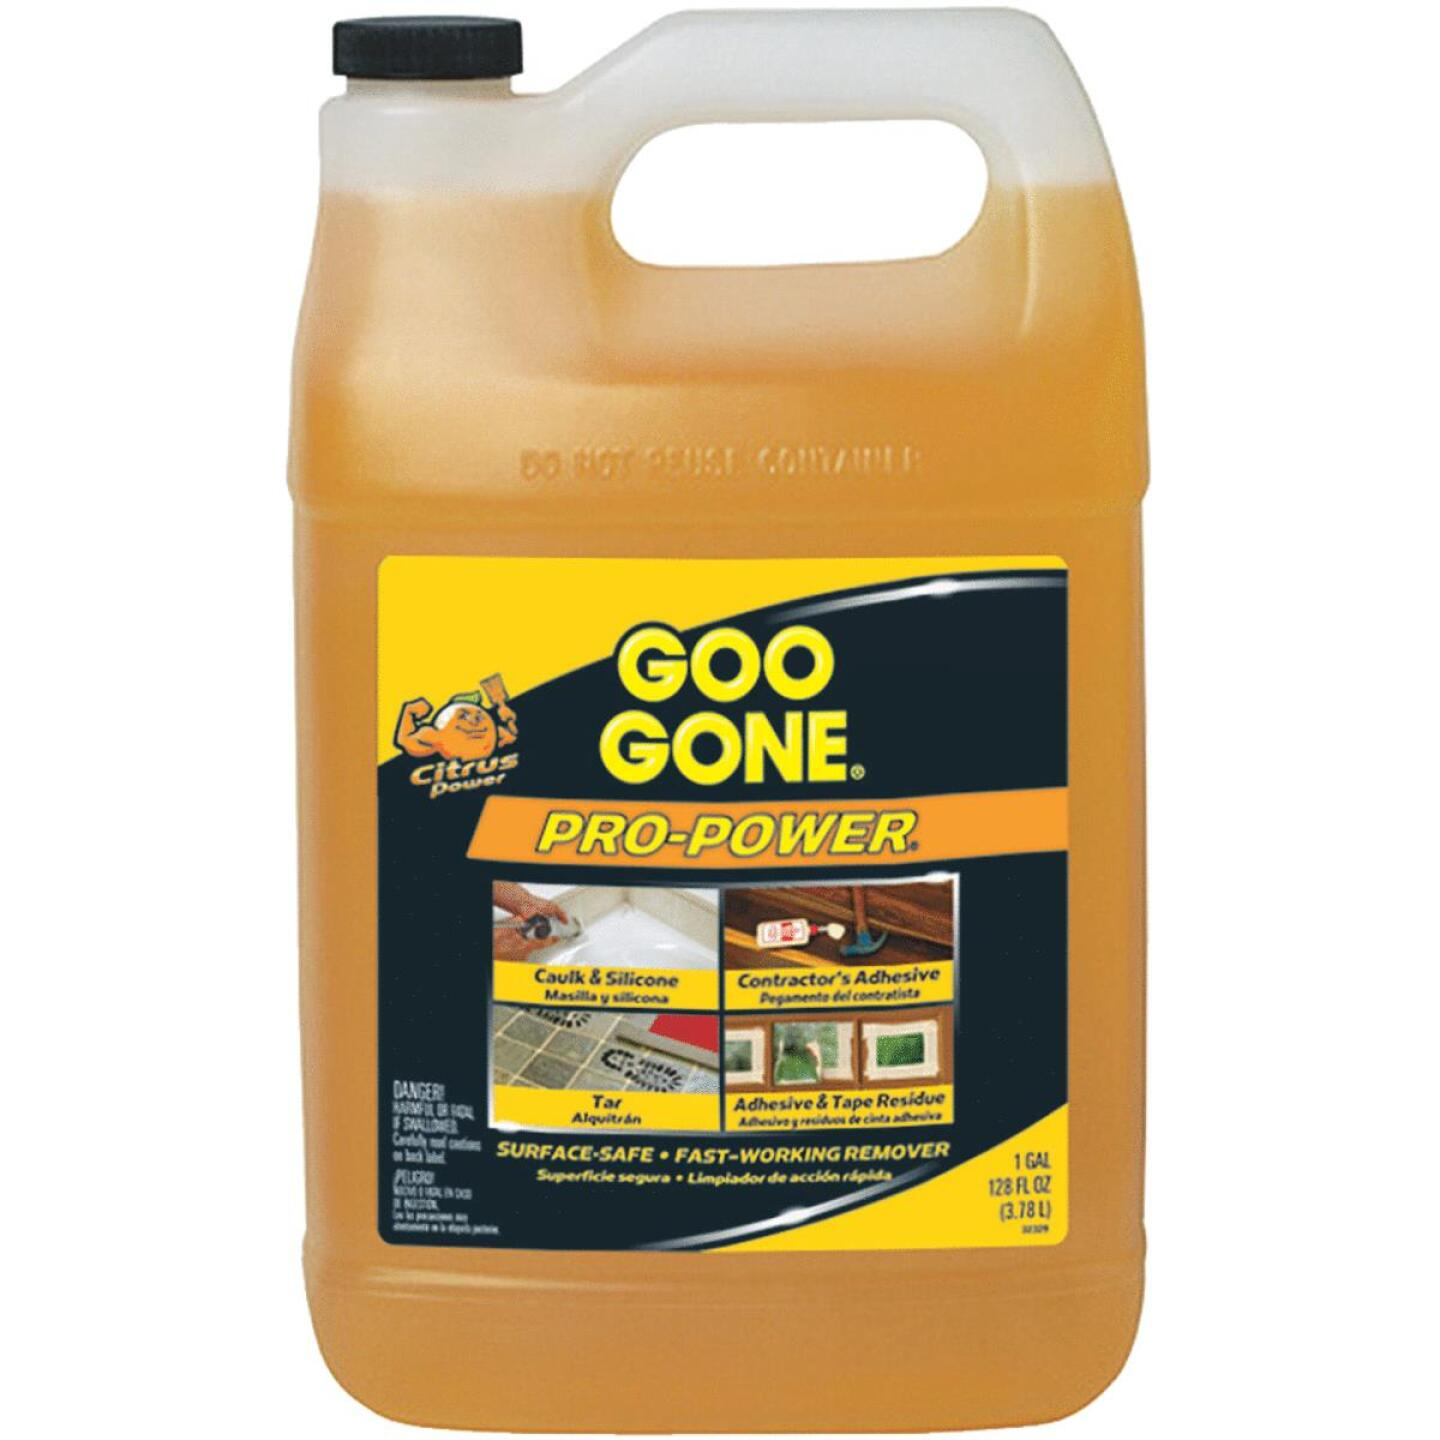 Goo Gone 1 Gal. Pro-Power Adhesive Remover Image 349